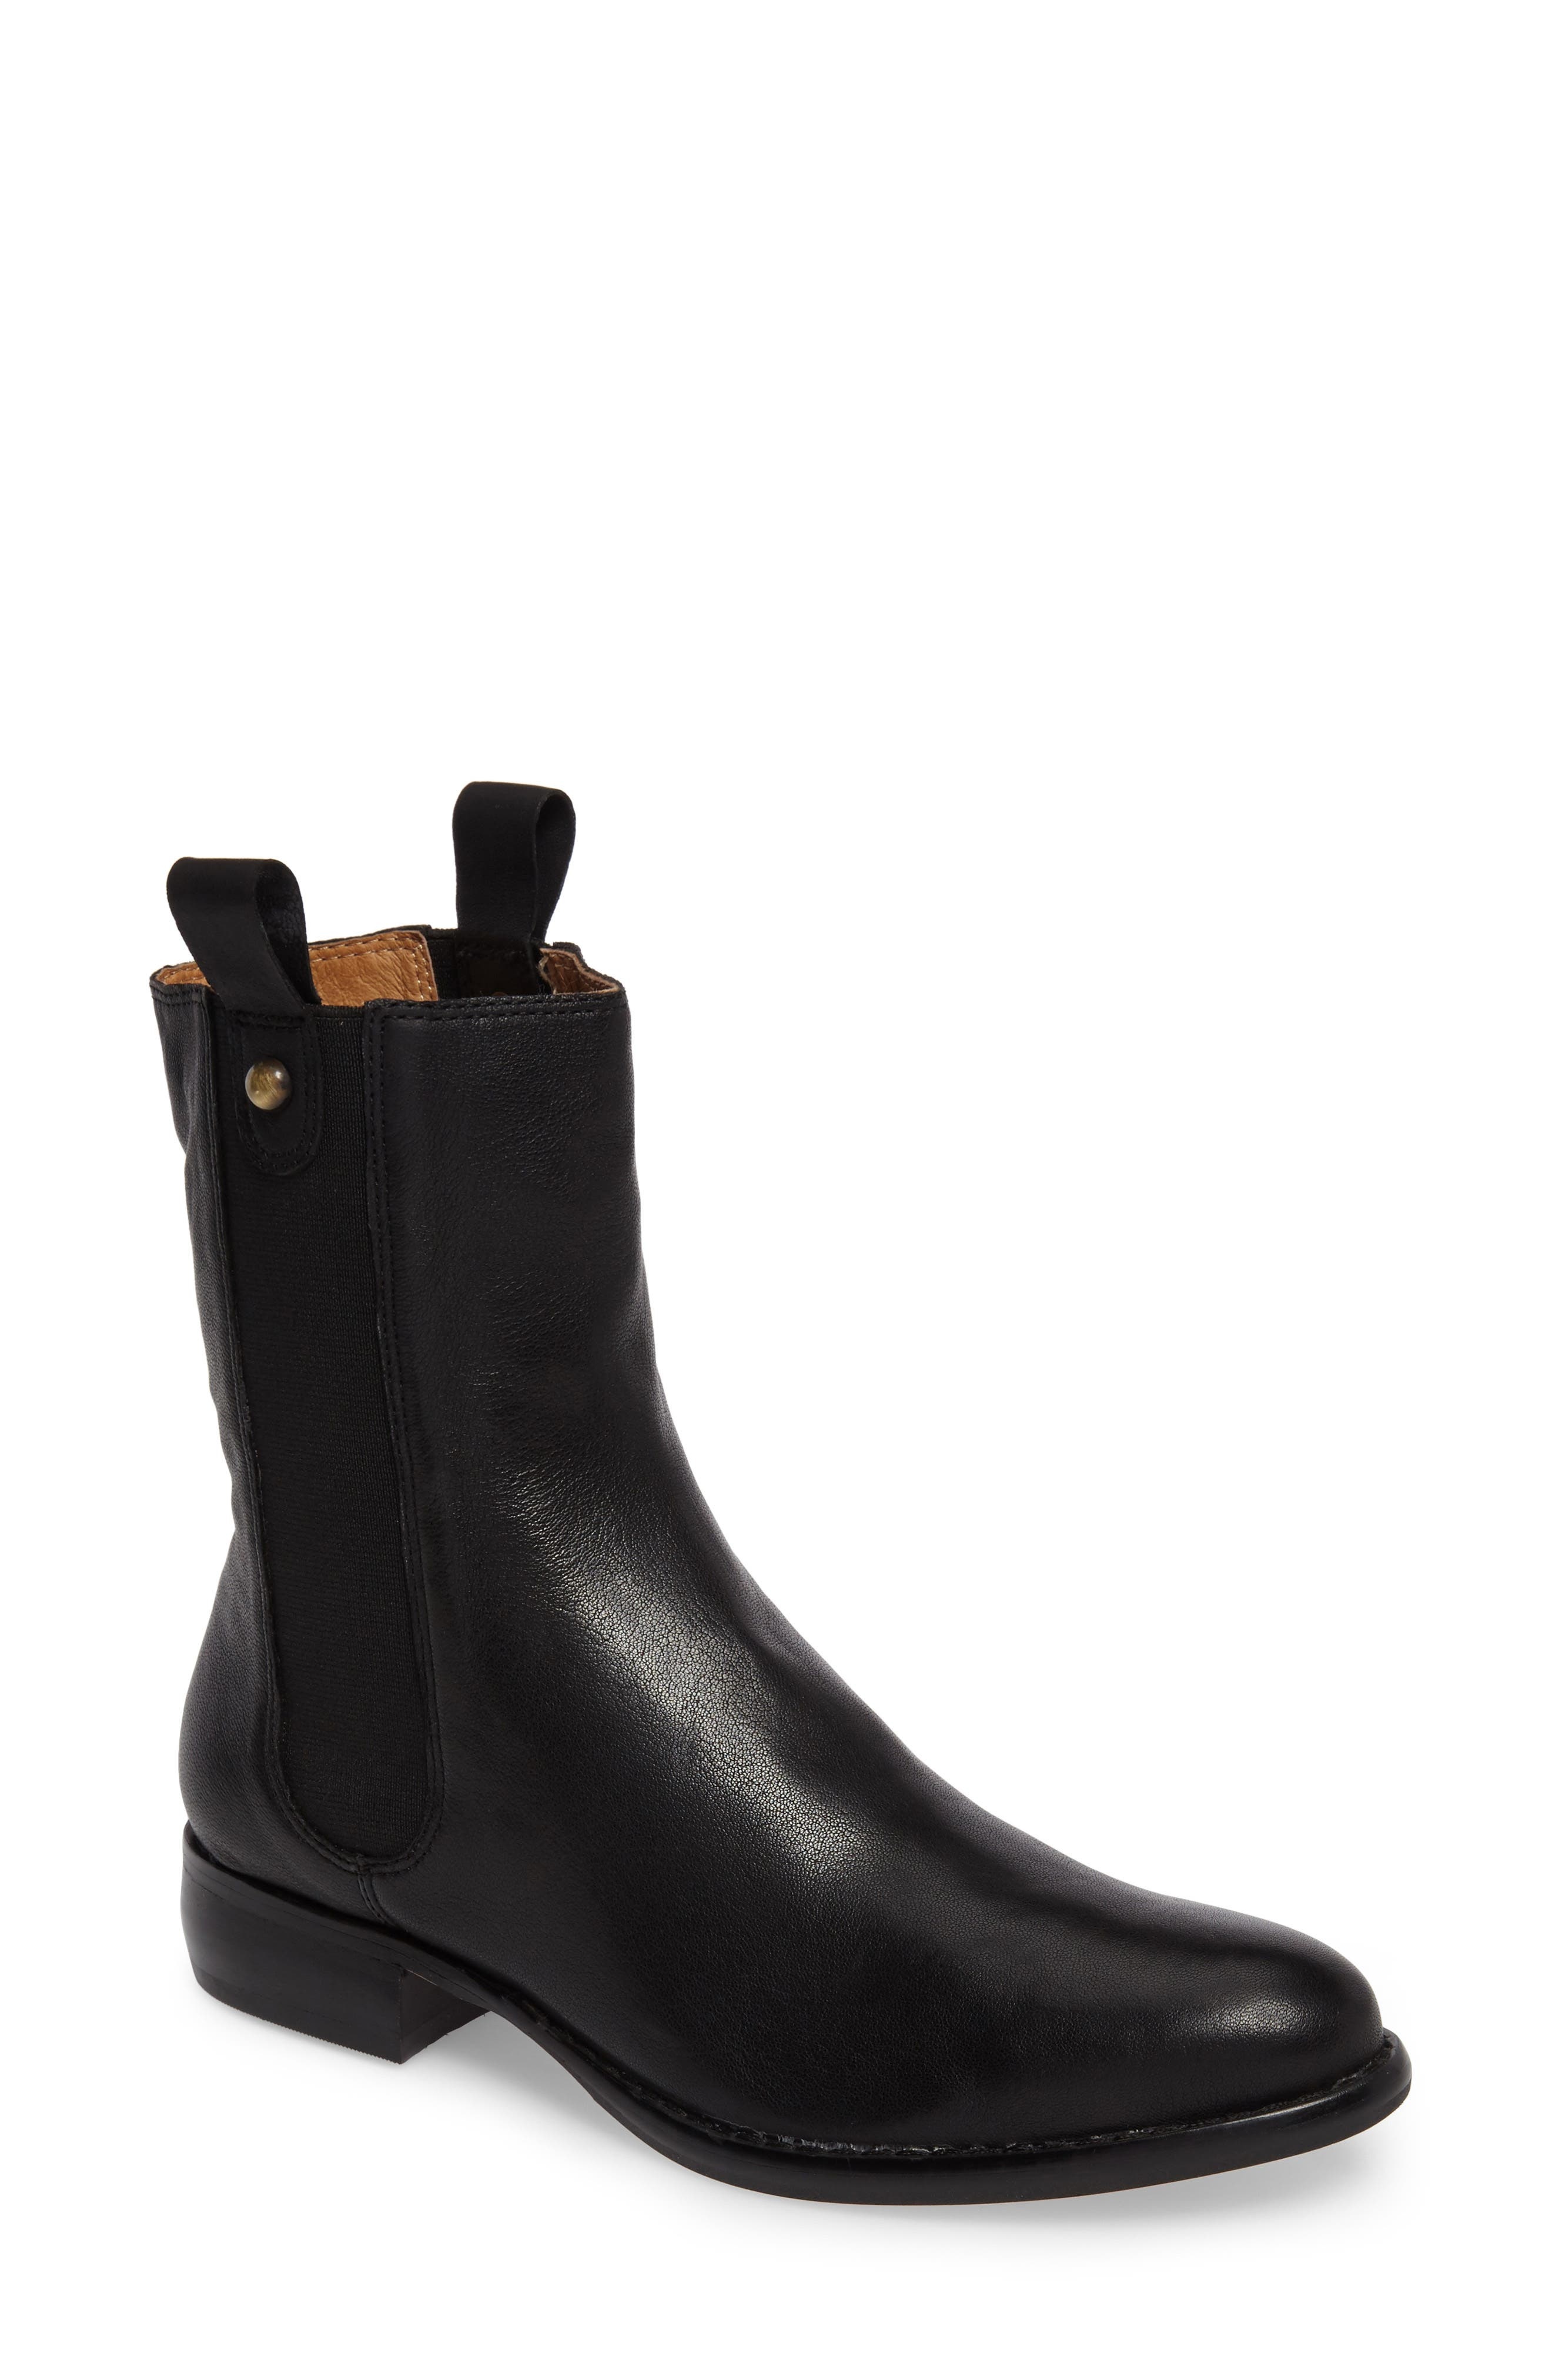 CC Corso Como Armando Boot,                             Main thumbnail 1, color,                             001